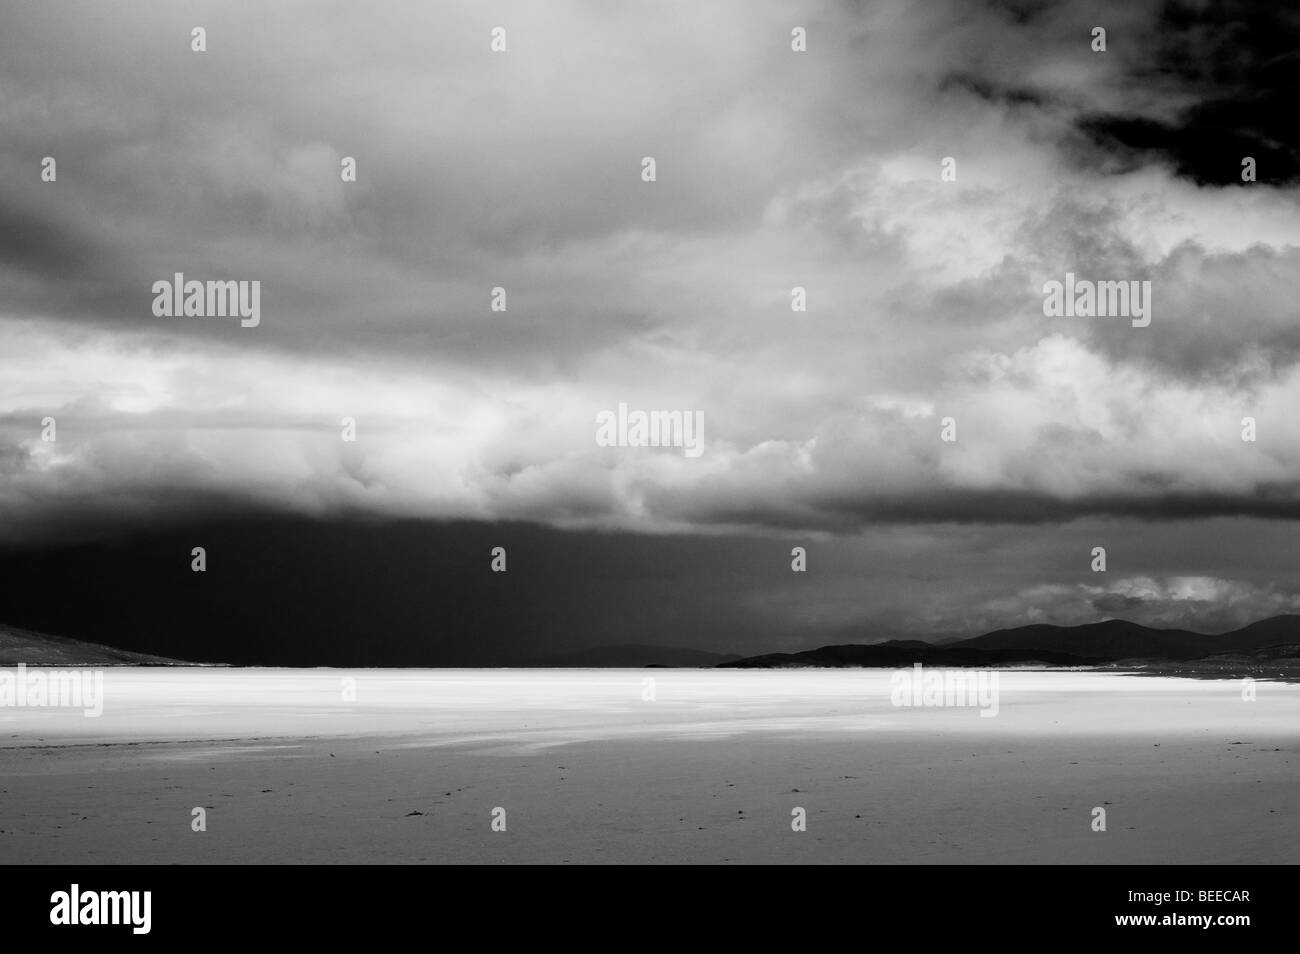 Rain storm and clouds over Traigh Scarista beach, Isle of Harris, Outer hebrides, Scotland. Black and White - Stock Image